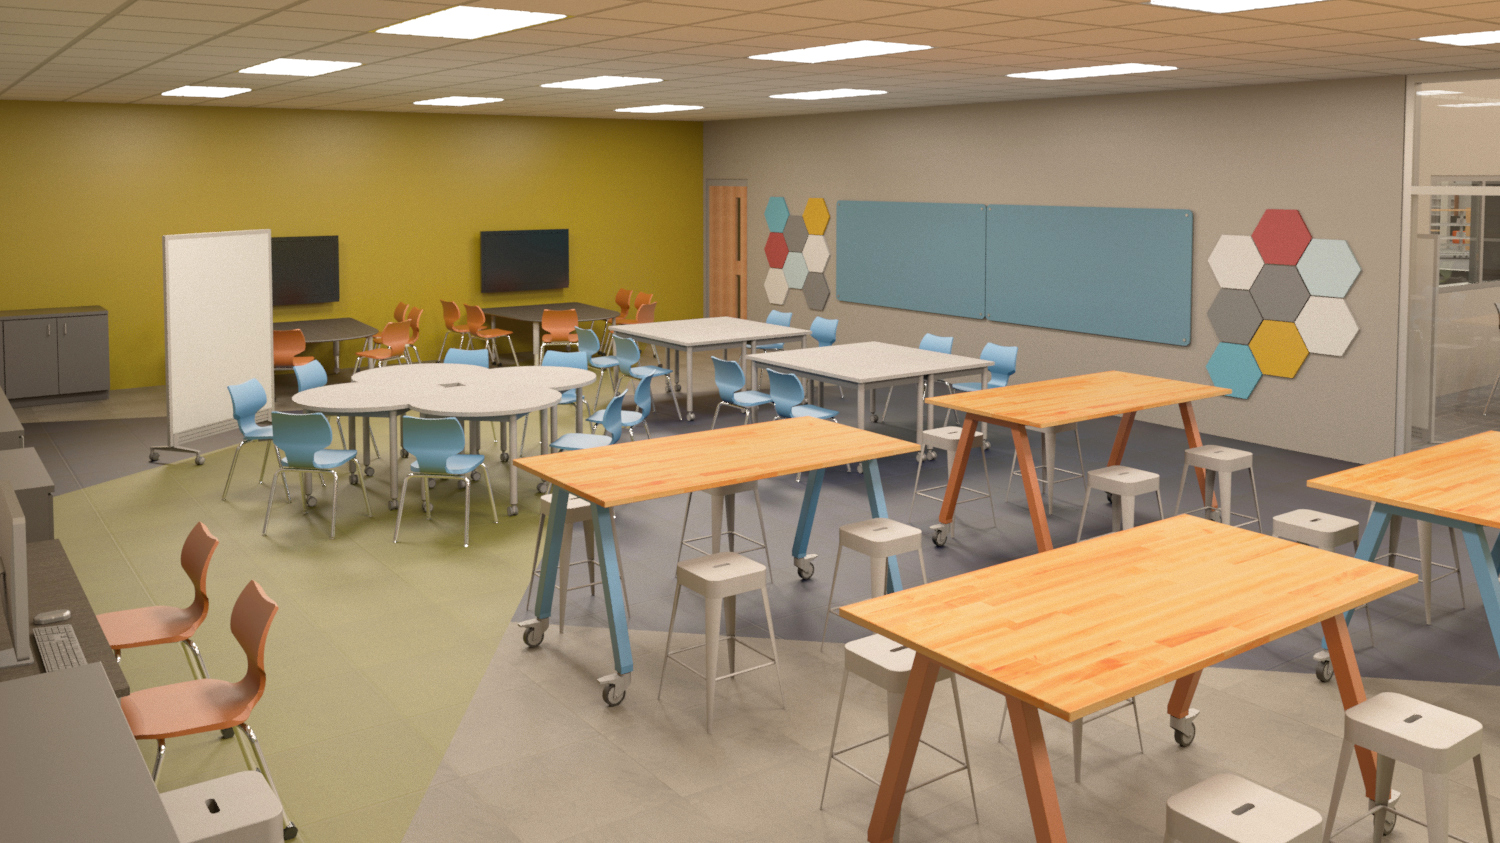 High school makerspace learning environment